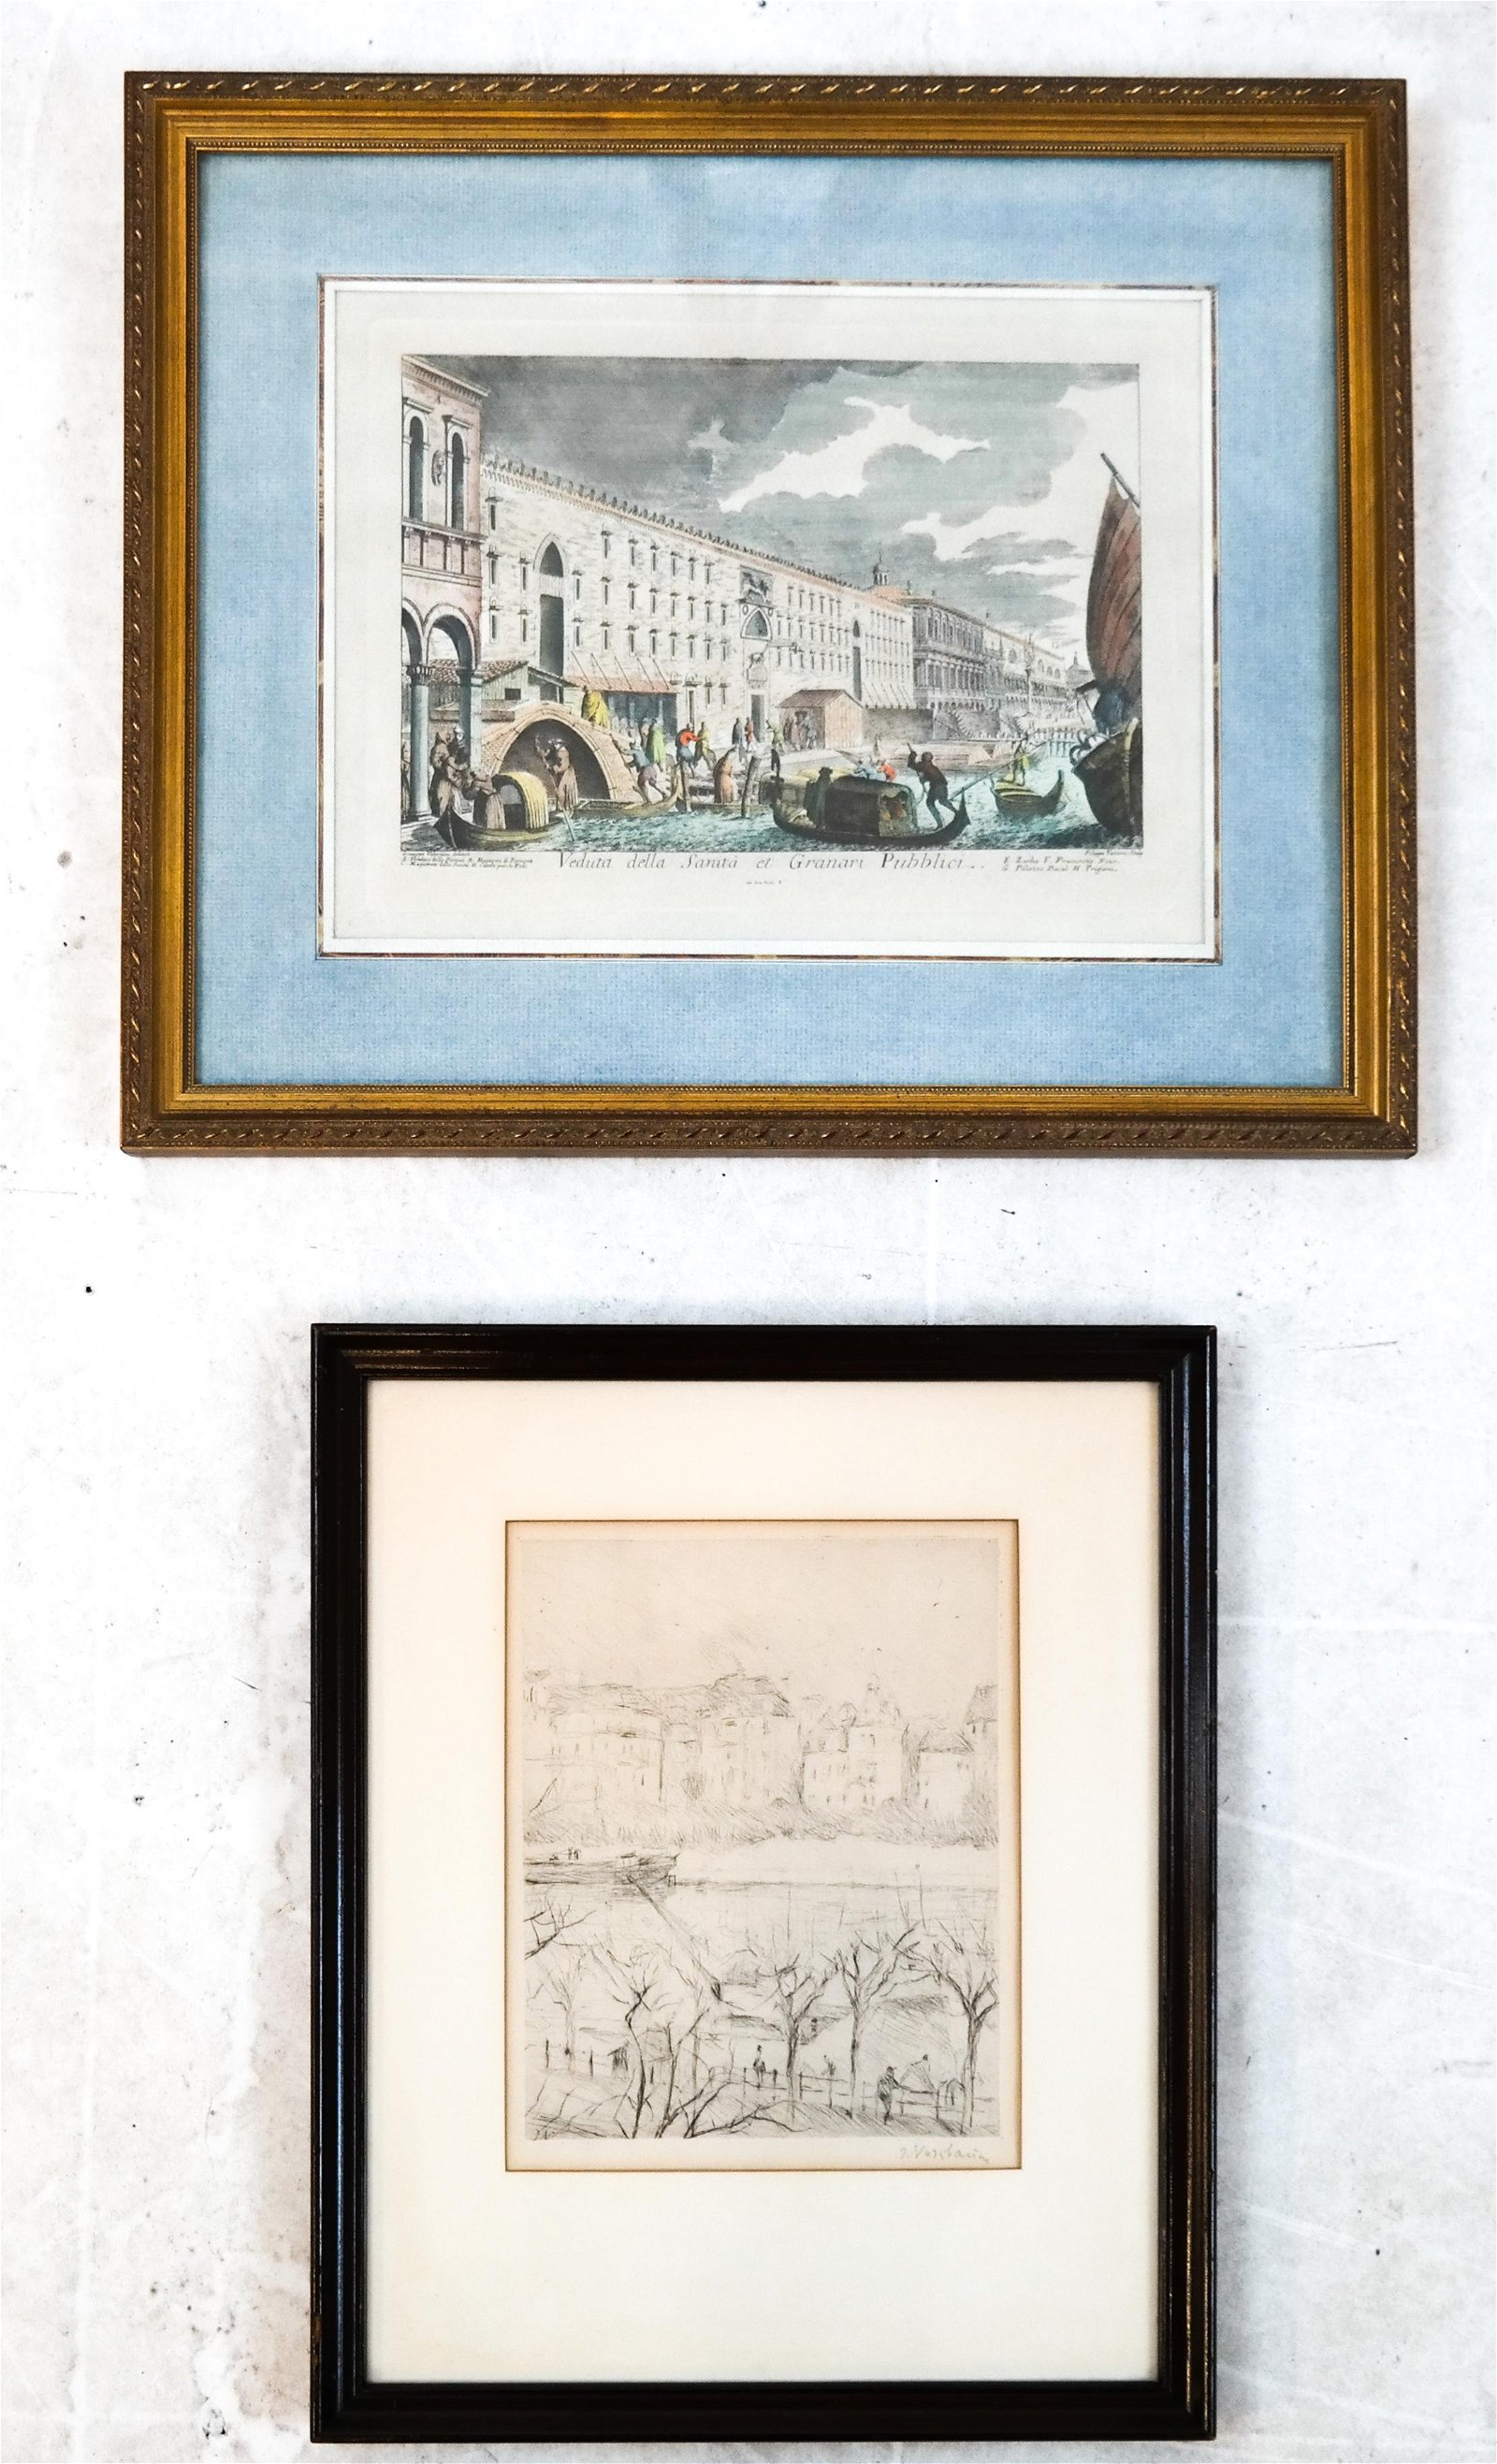 Two Framed Etchings: P. Vasconi, Other